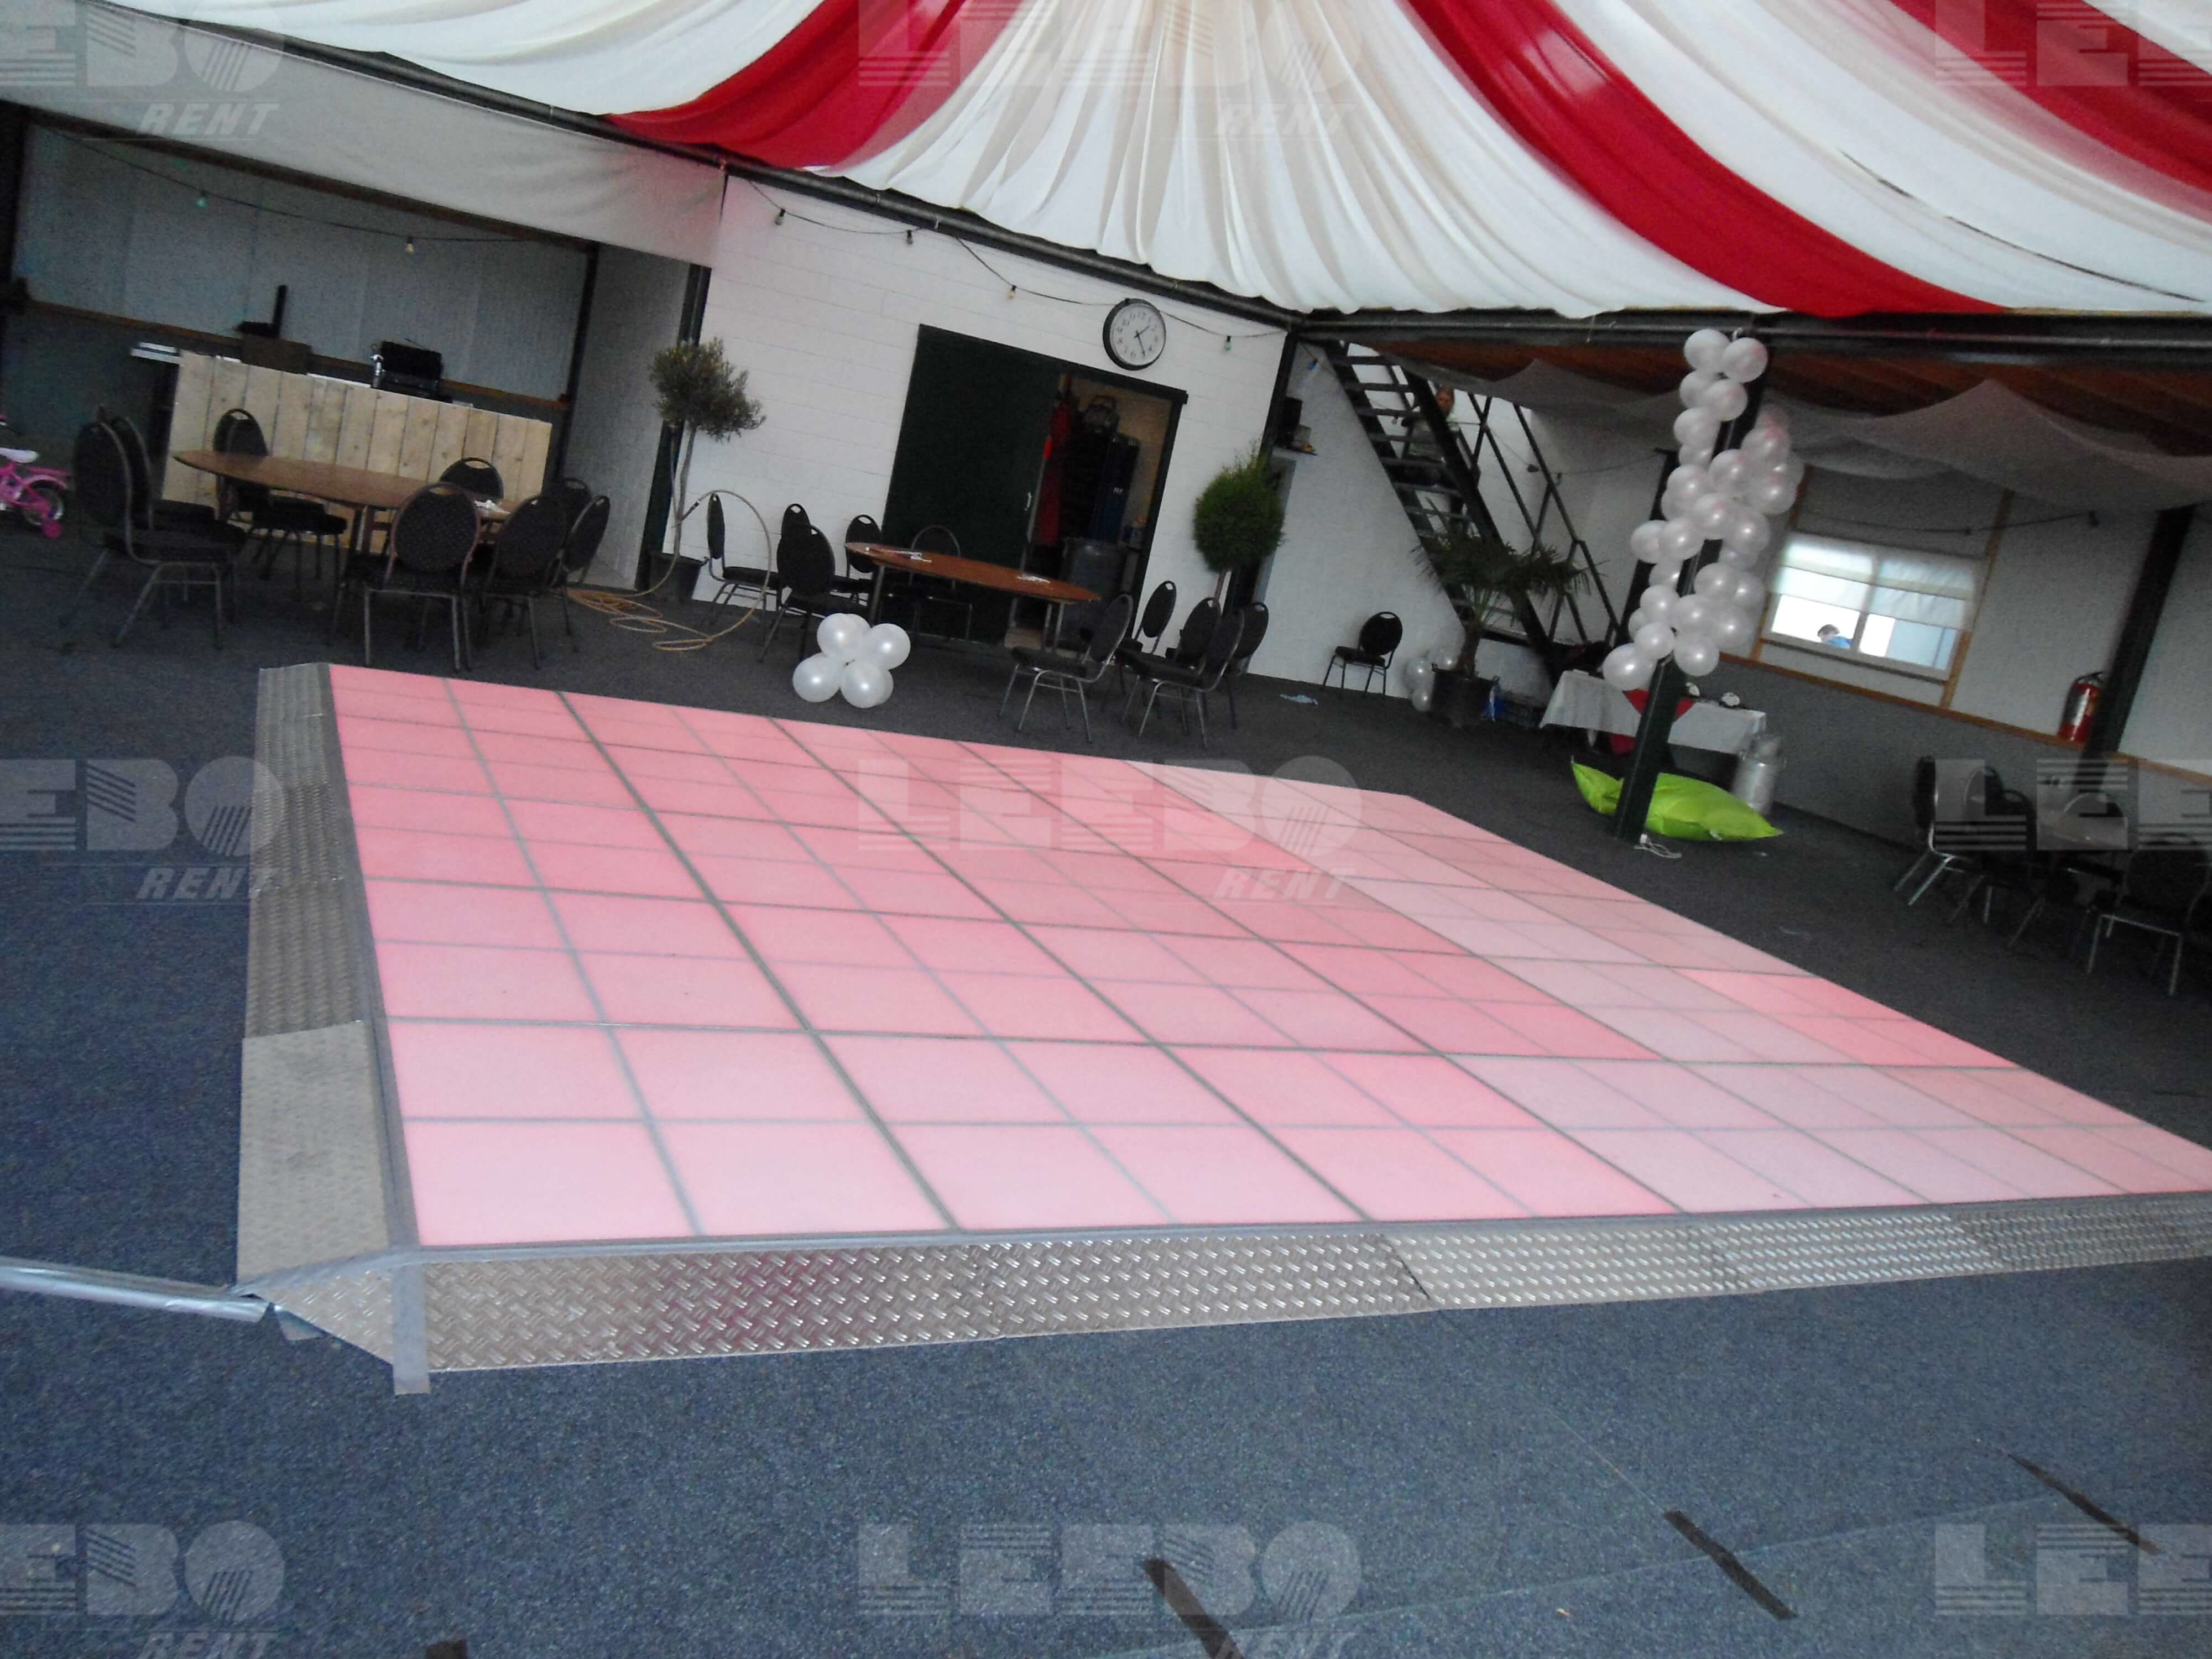 Saturday Night Fever bedrijfs evenement boek jesnel op leeborent